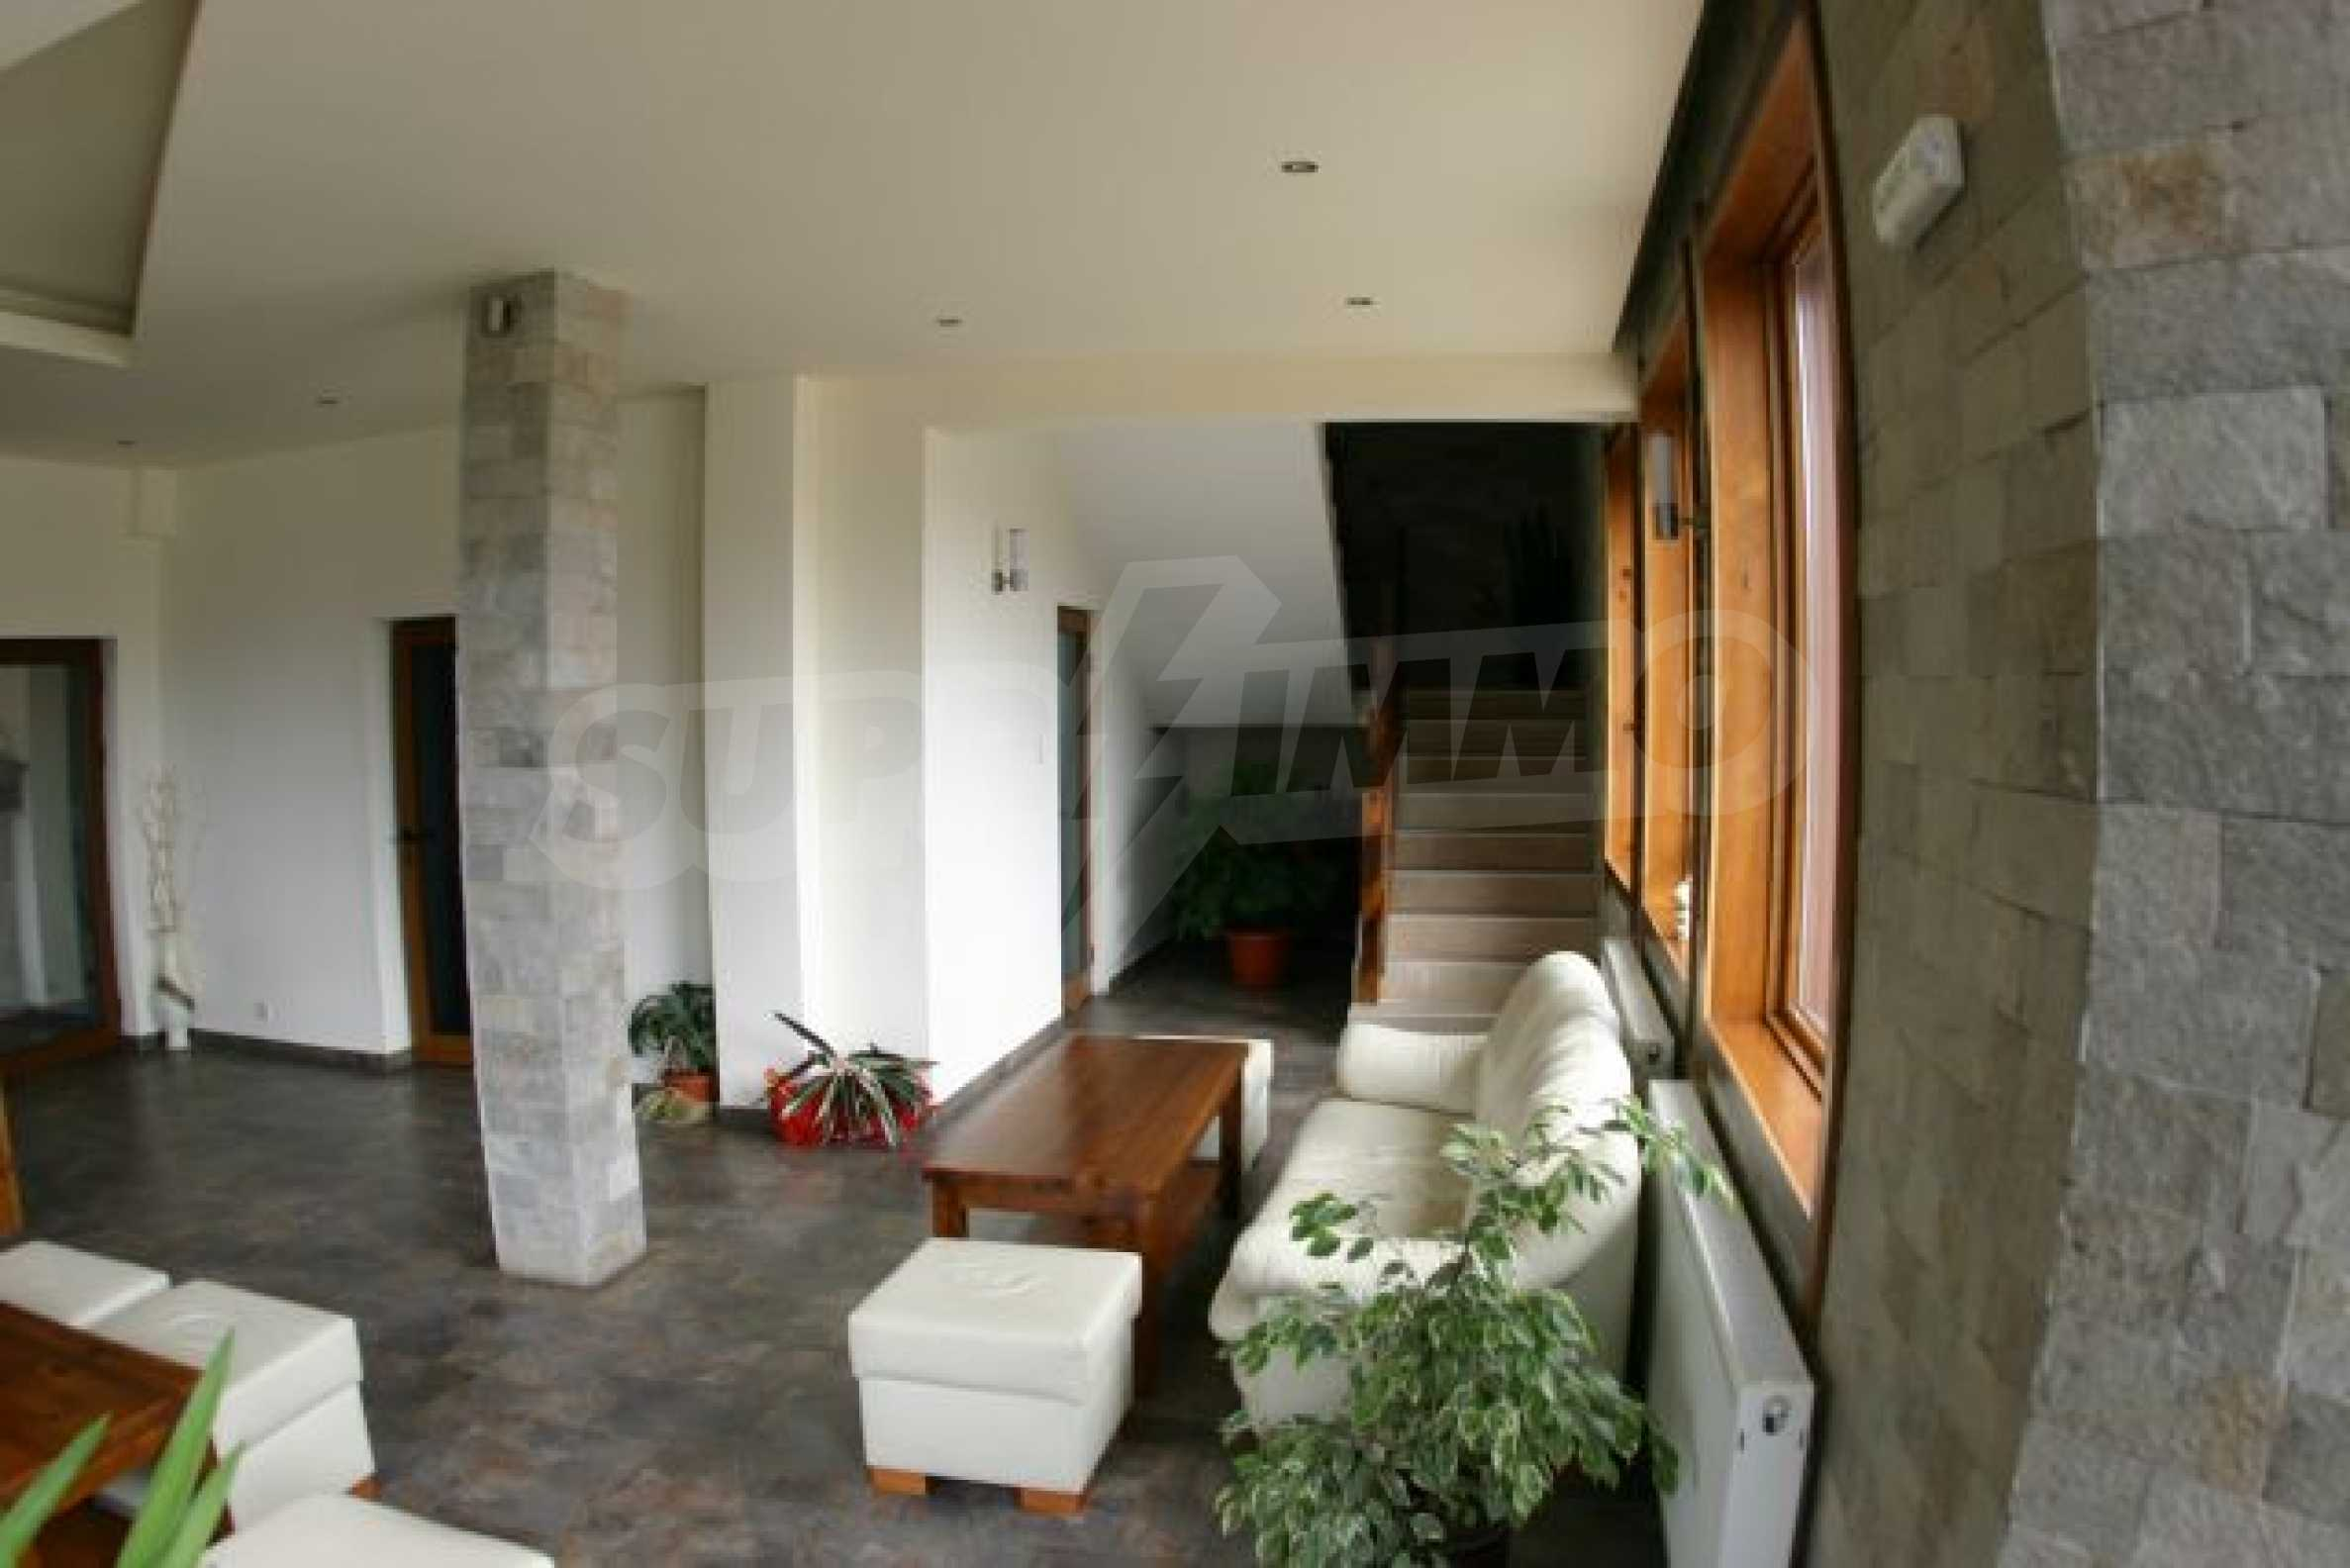 Fully furnished and equipped hotel in an excellent condition in Bansko 2